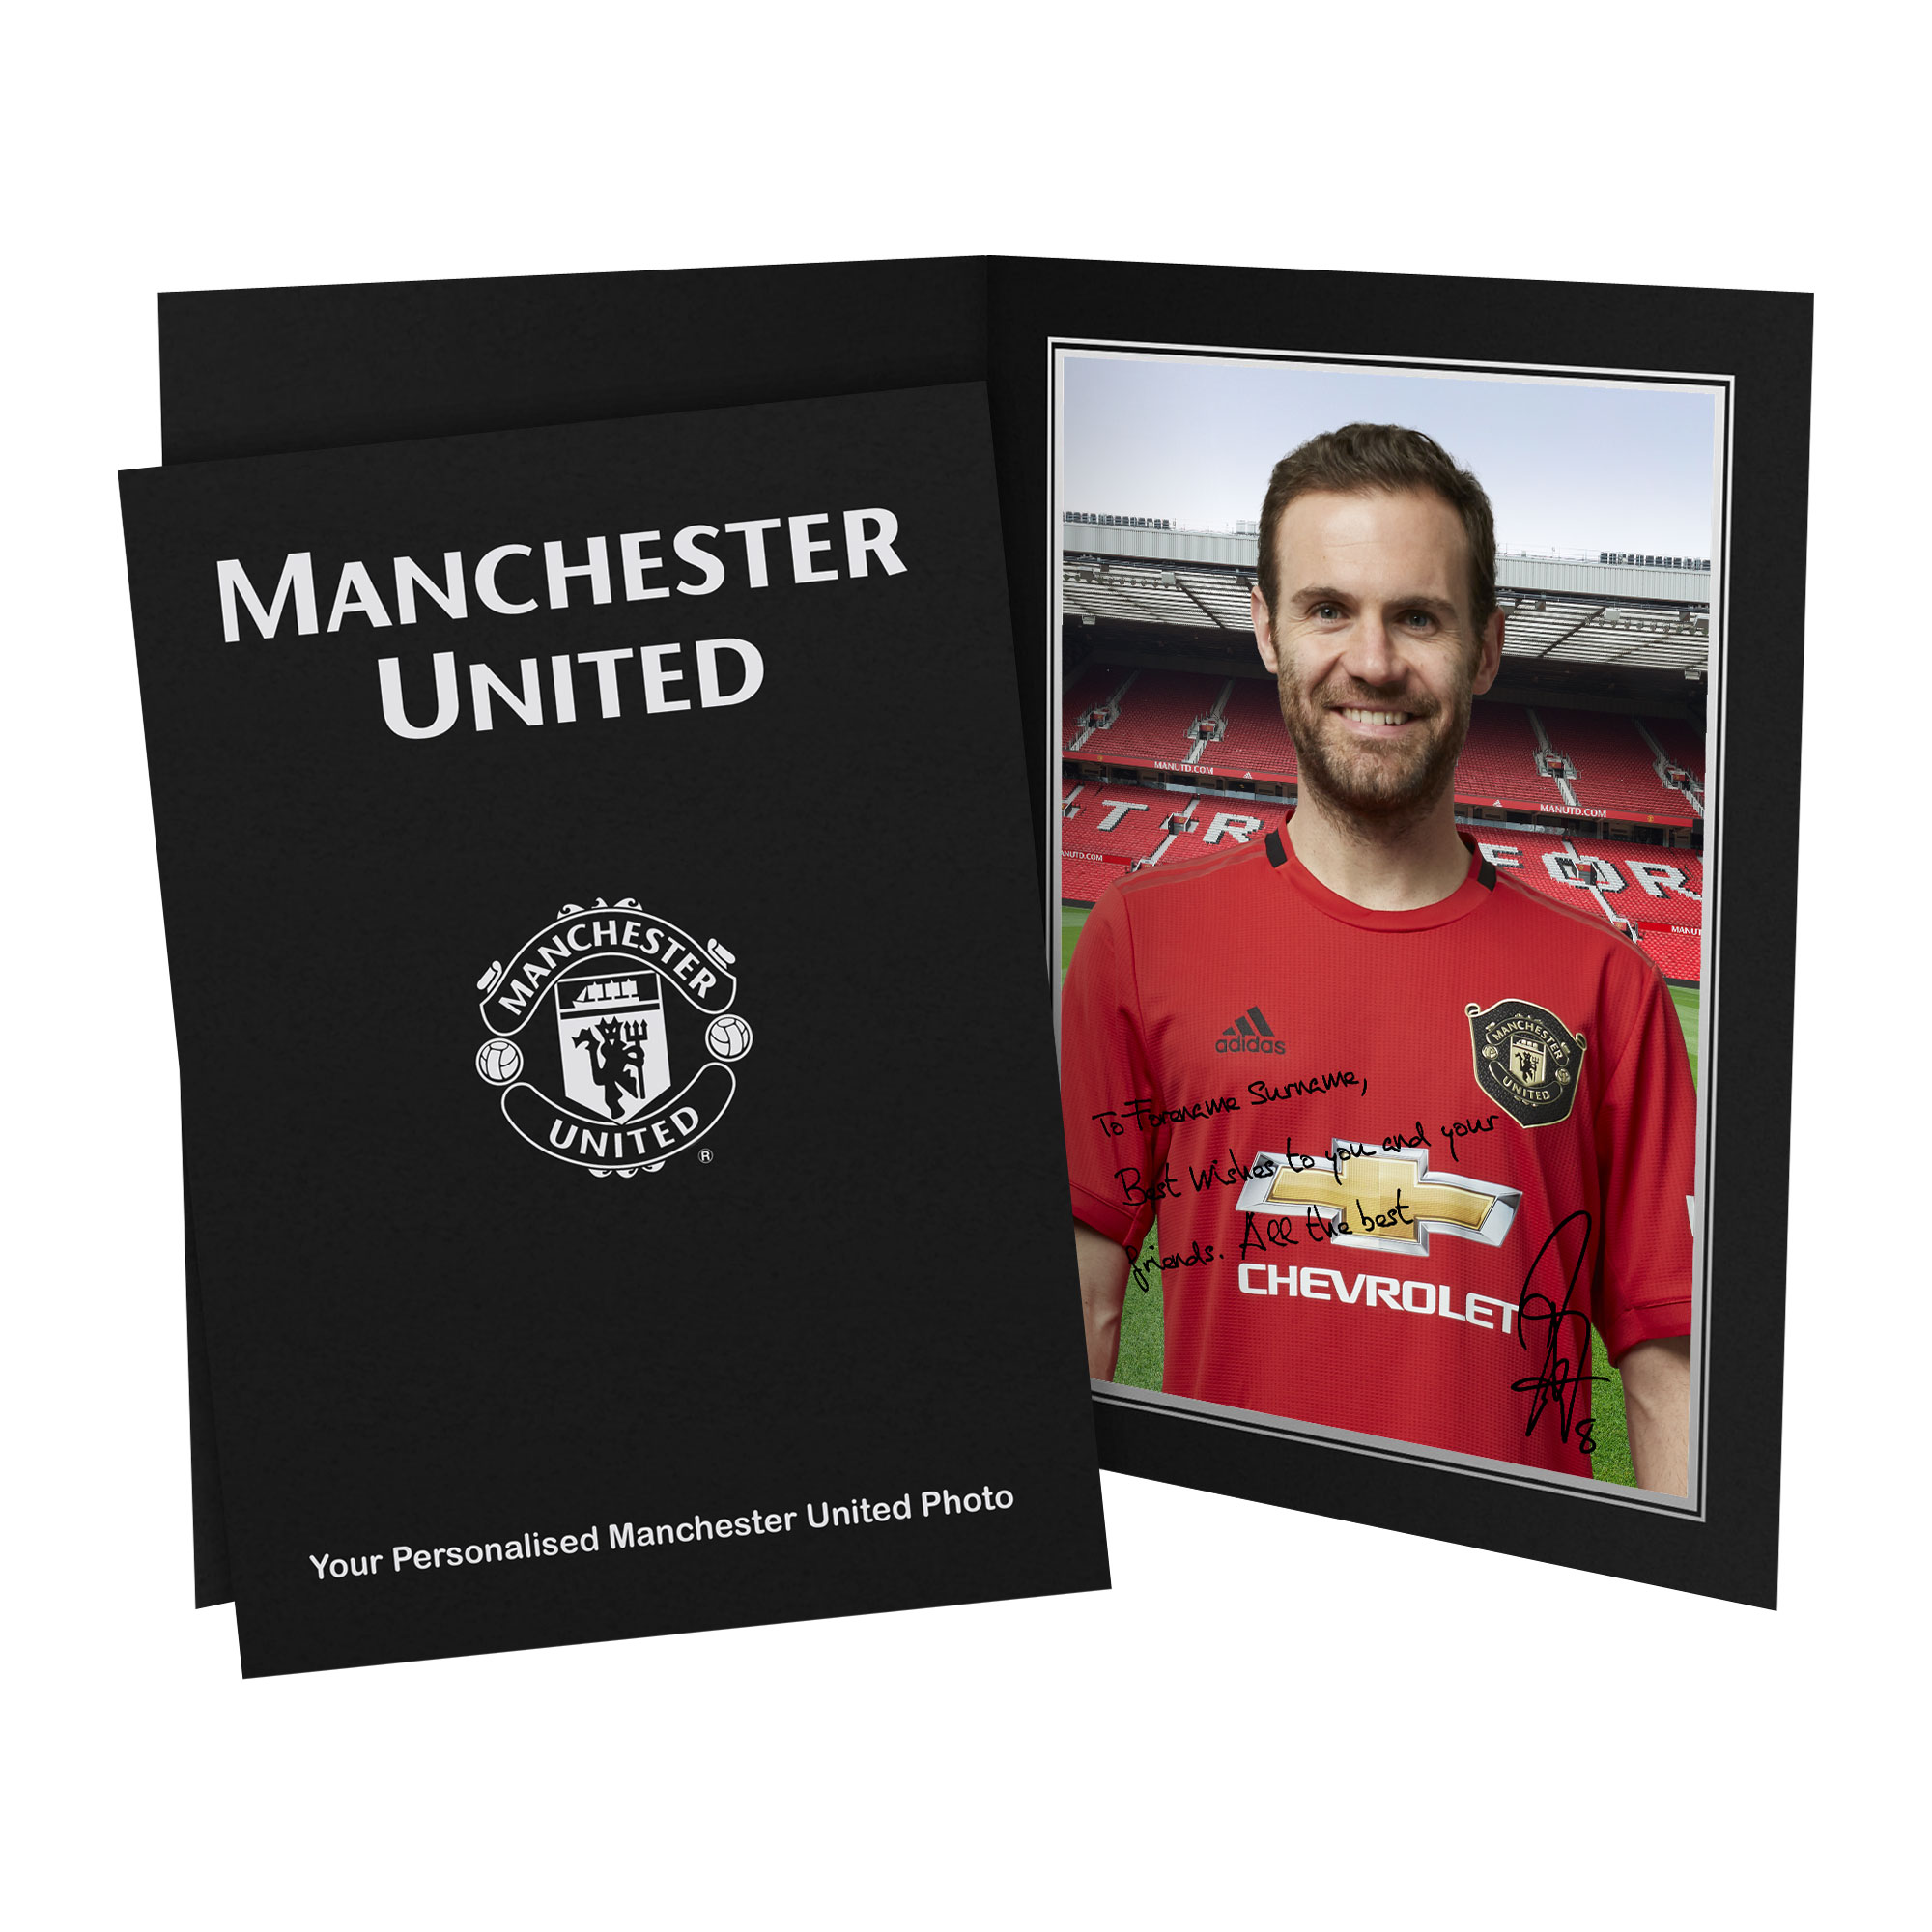 Manchester United Personalised Signature Photo in Presentation Folder - Mata